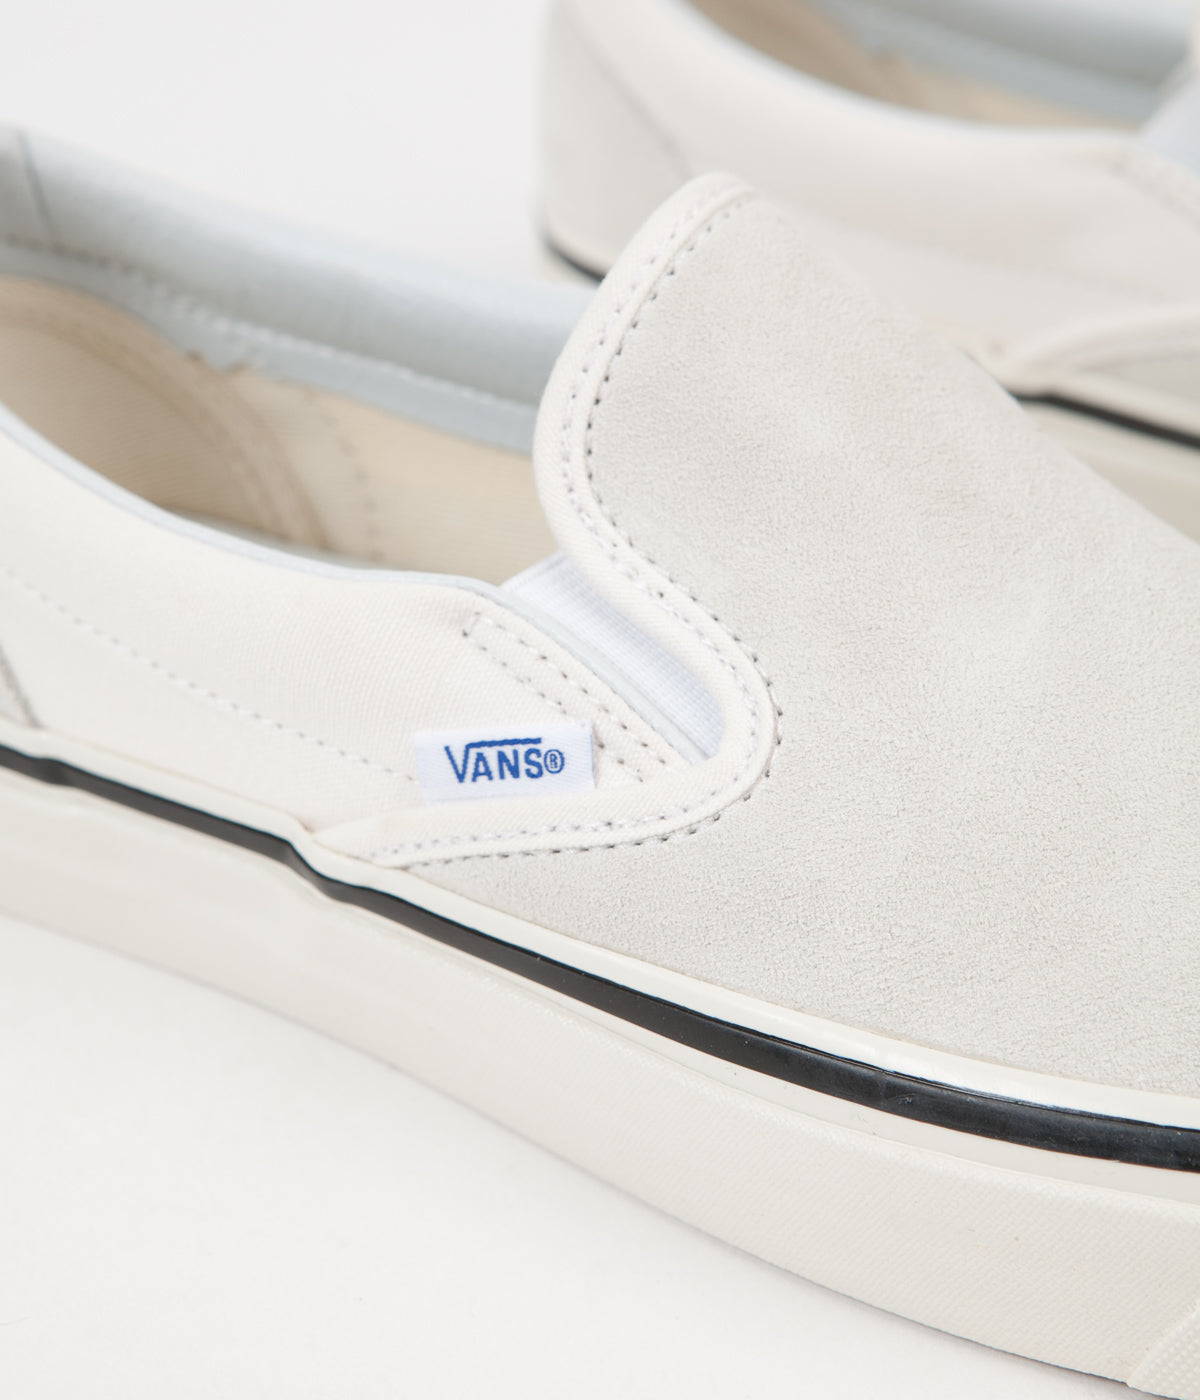 Vans Classic Slip On 98 DX Anaheim Factory Suede Shoes - OG White